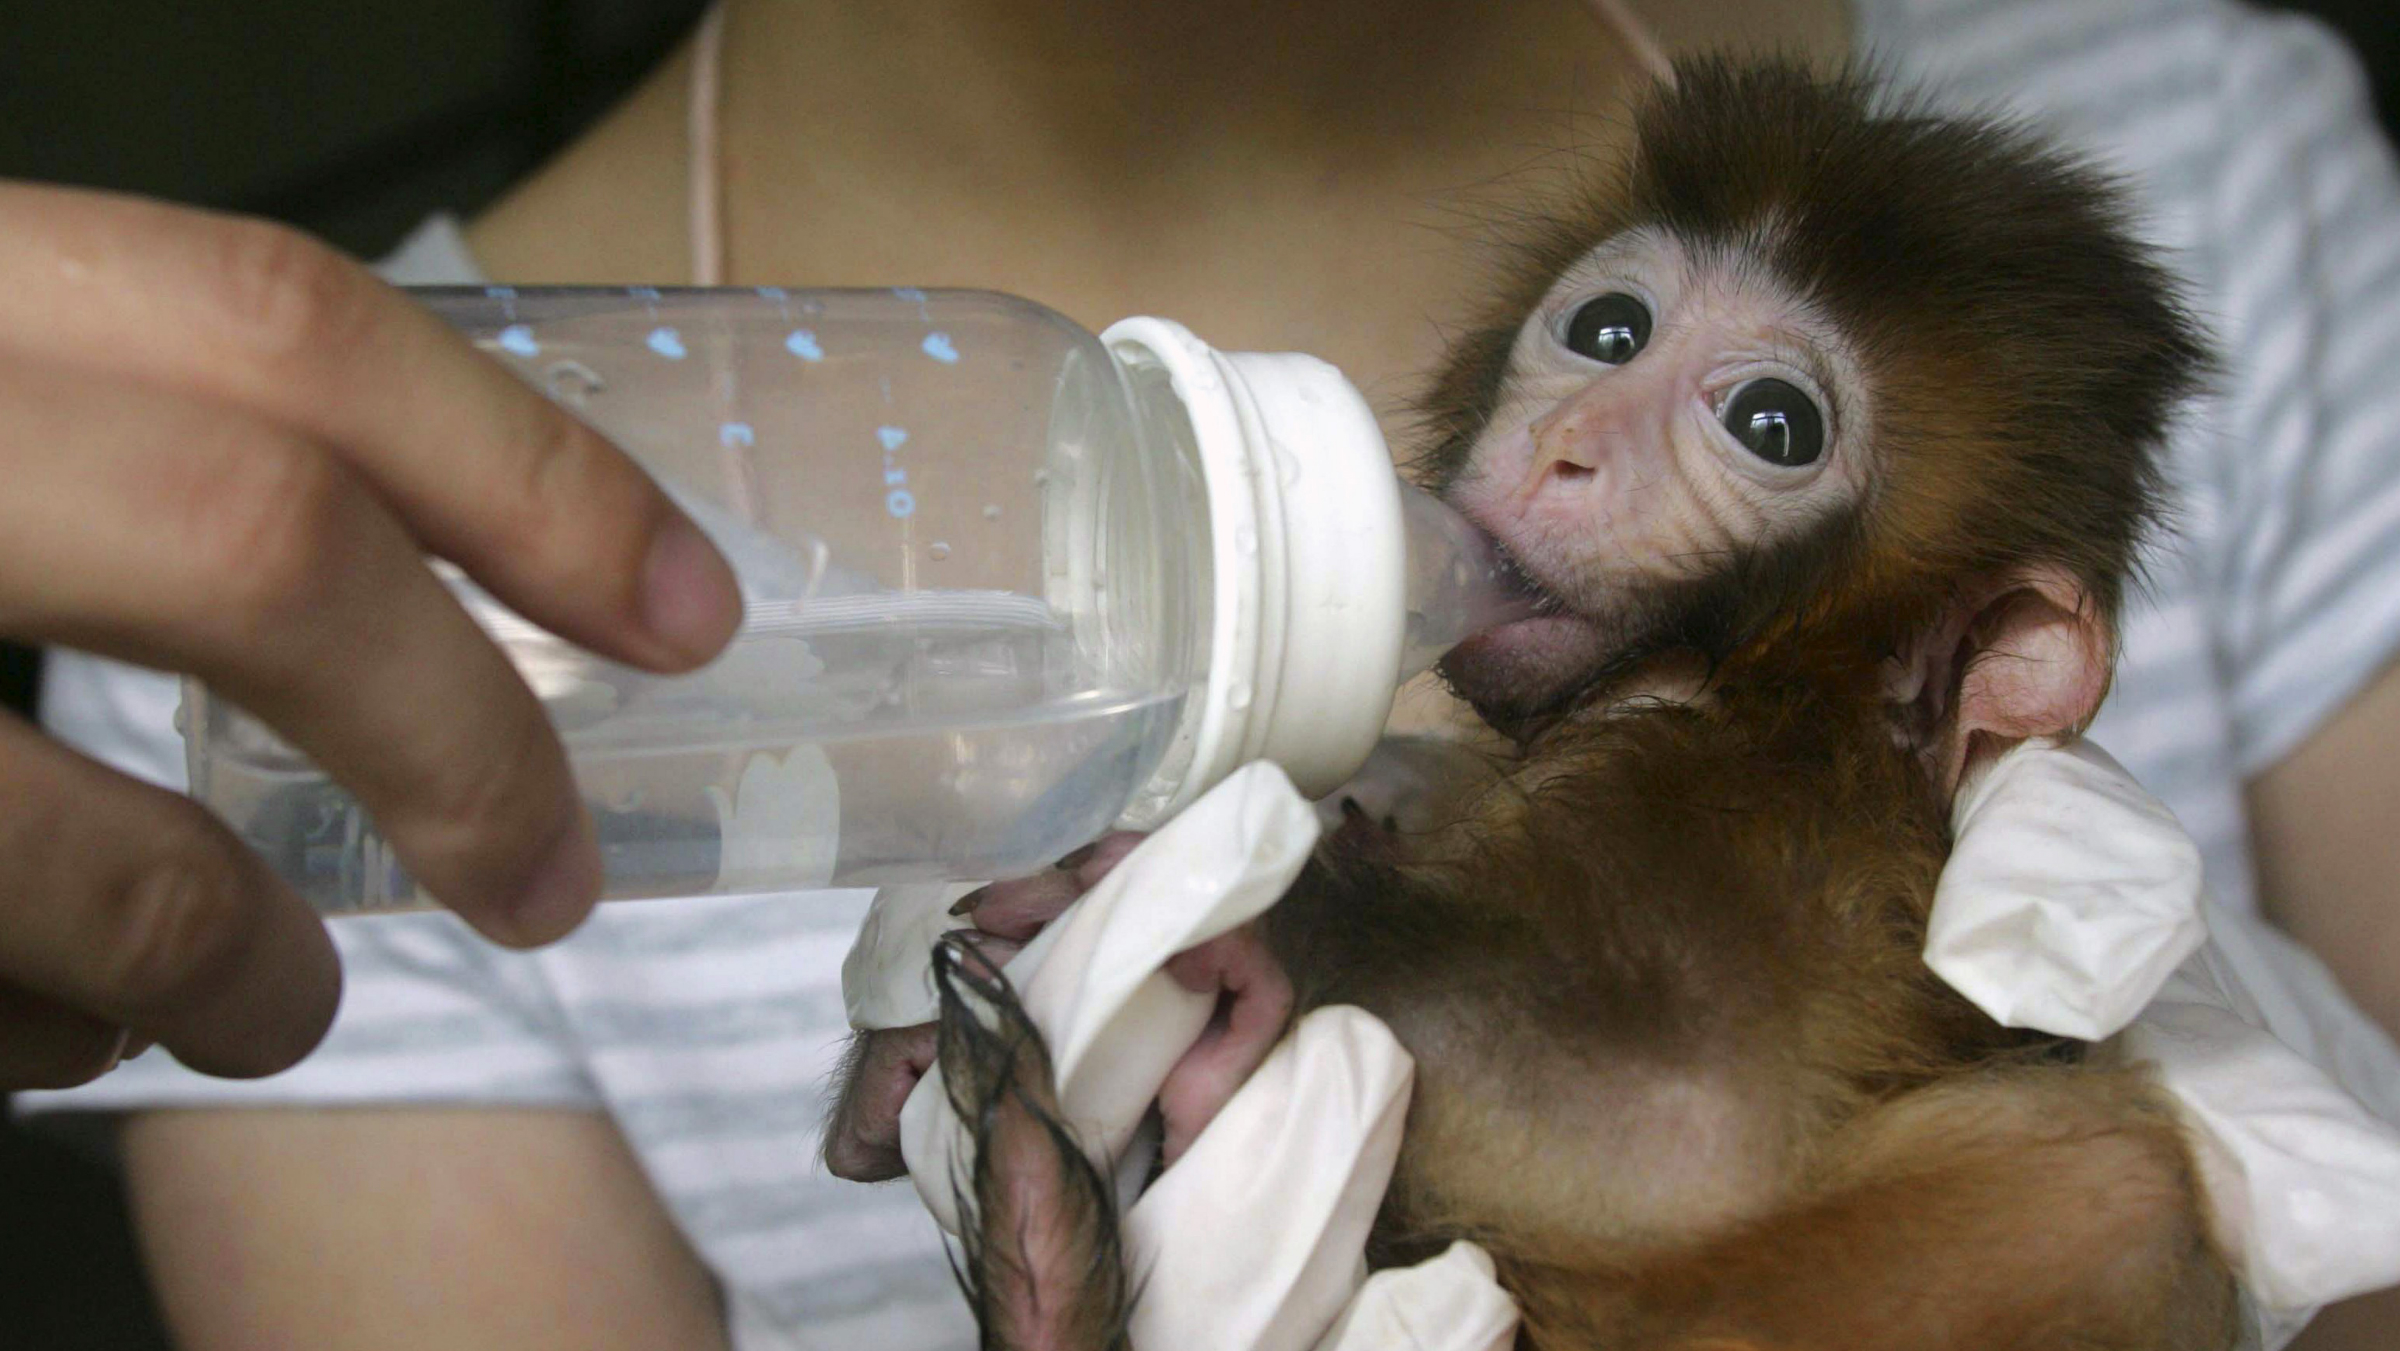 A baby macaque is fed water at a wildlife aid centre in Wuhan, Hubei province July 1, 2009. The centre has been taking care of the macaque since its mother died of intestinal infarction five days after giving birth, according to China Daily. Picture taken July 1, 2009. REUTERS/China Daily